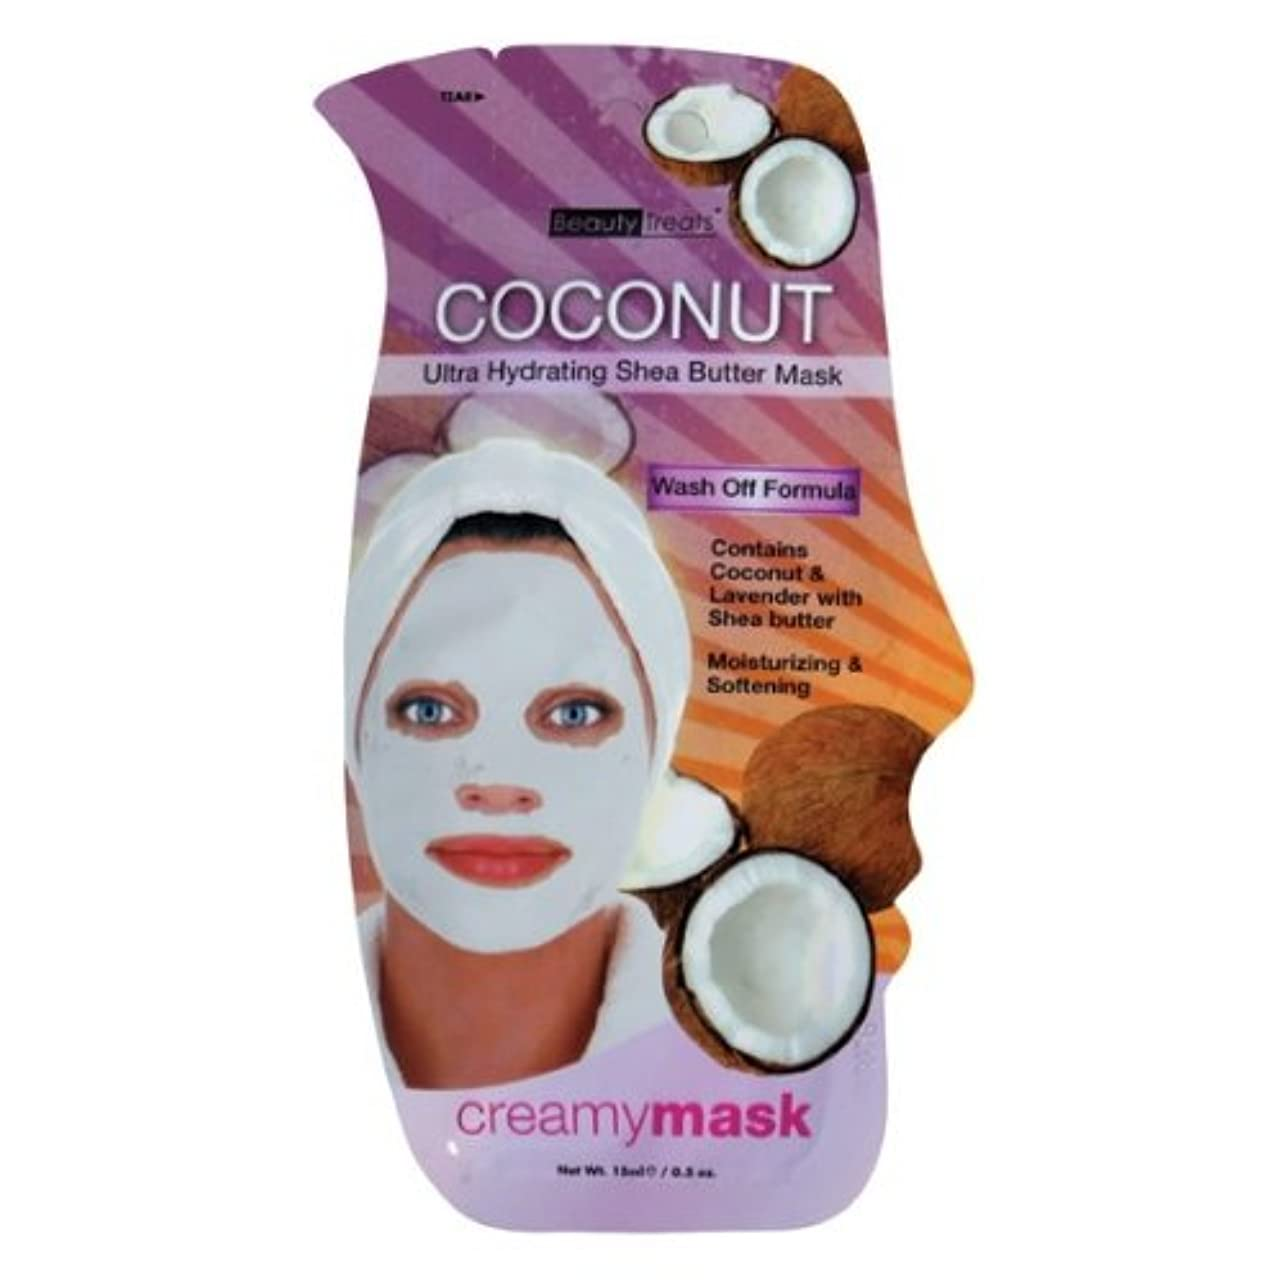 くま冷酷なスチュワード(6 Pack) BEAUTY TREATS Coconut Ultra Hydrating Shea Butter Mask - Coconut (並行輸入品)